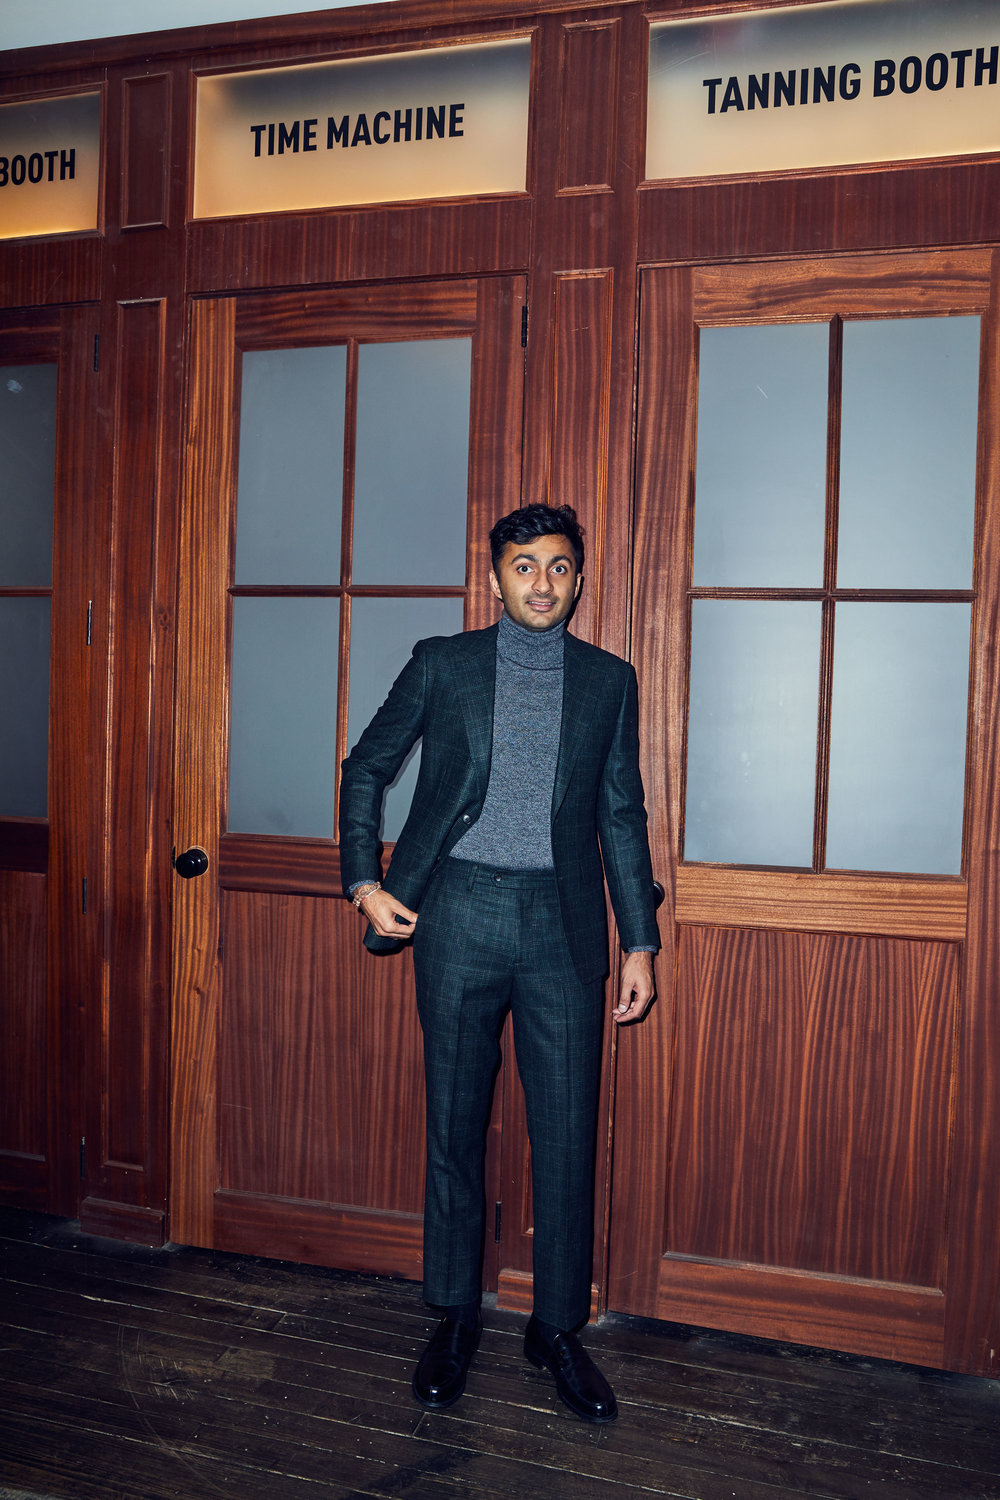 Moments later, in front of the fake time machine, Nimesh wears the    Premium Italian Wool Suit (Hayden Green Glenplaid)    and the    Merino Turtleneck Sweater (Grey Marl)